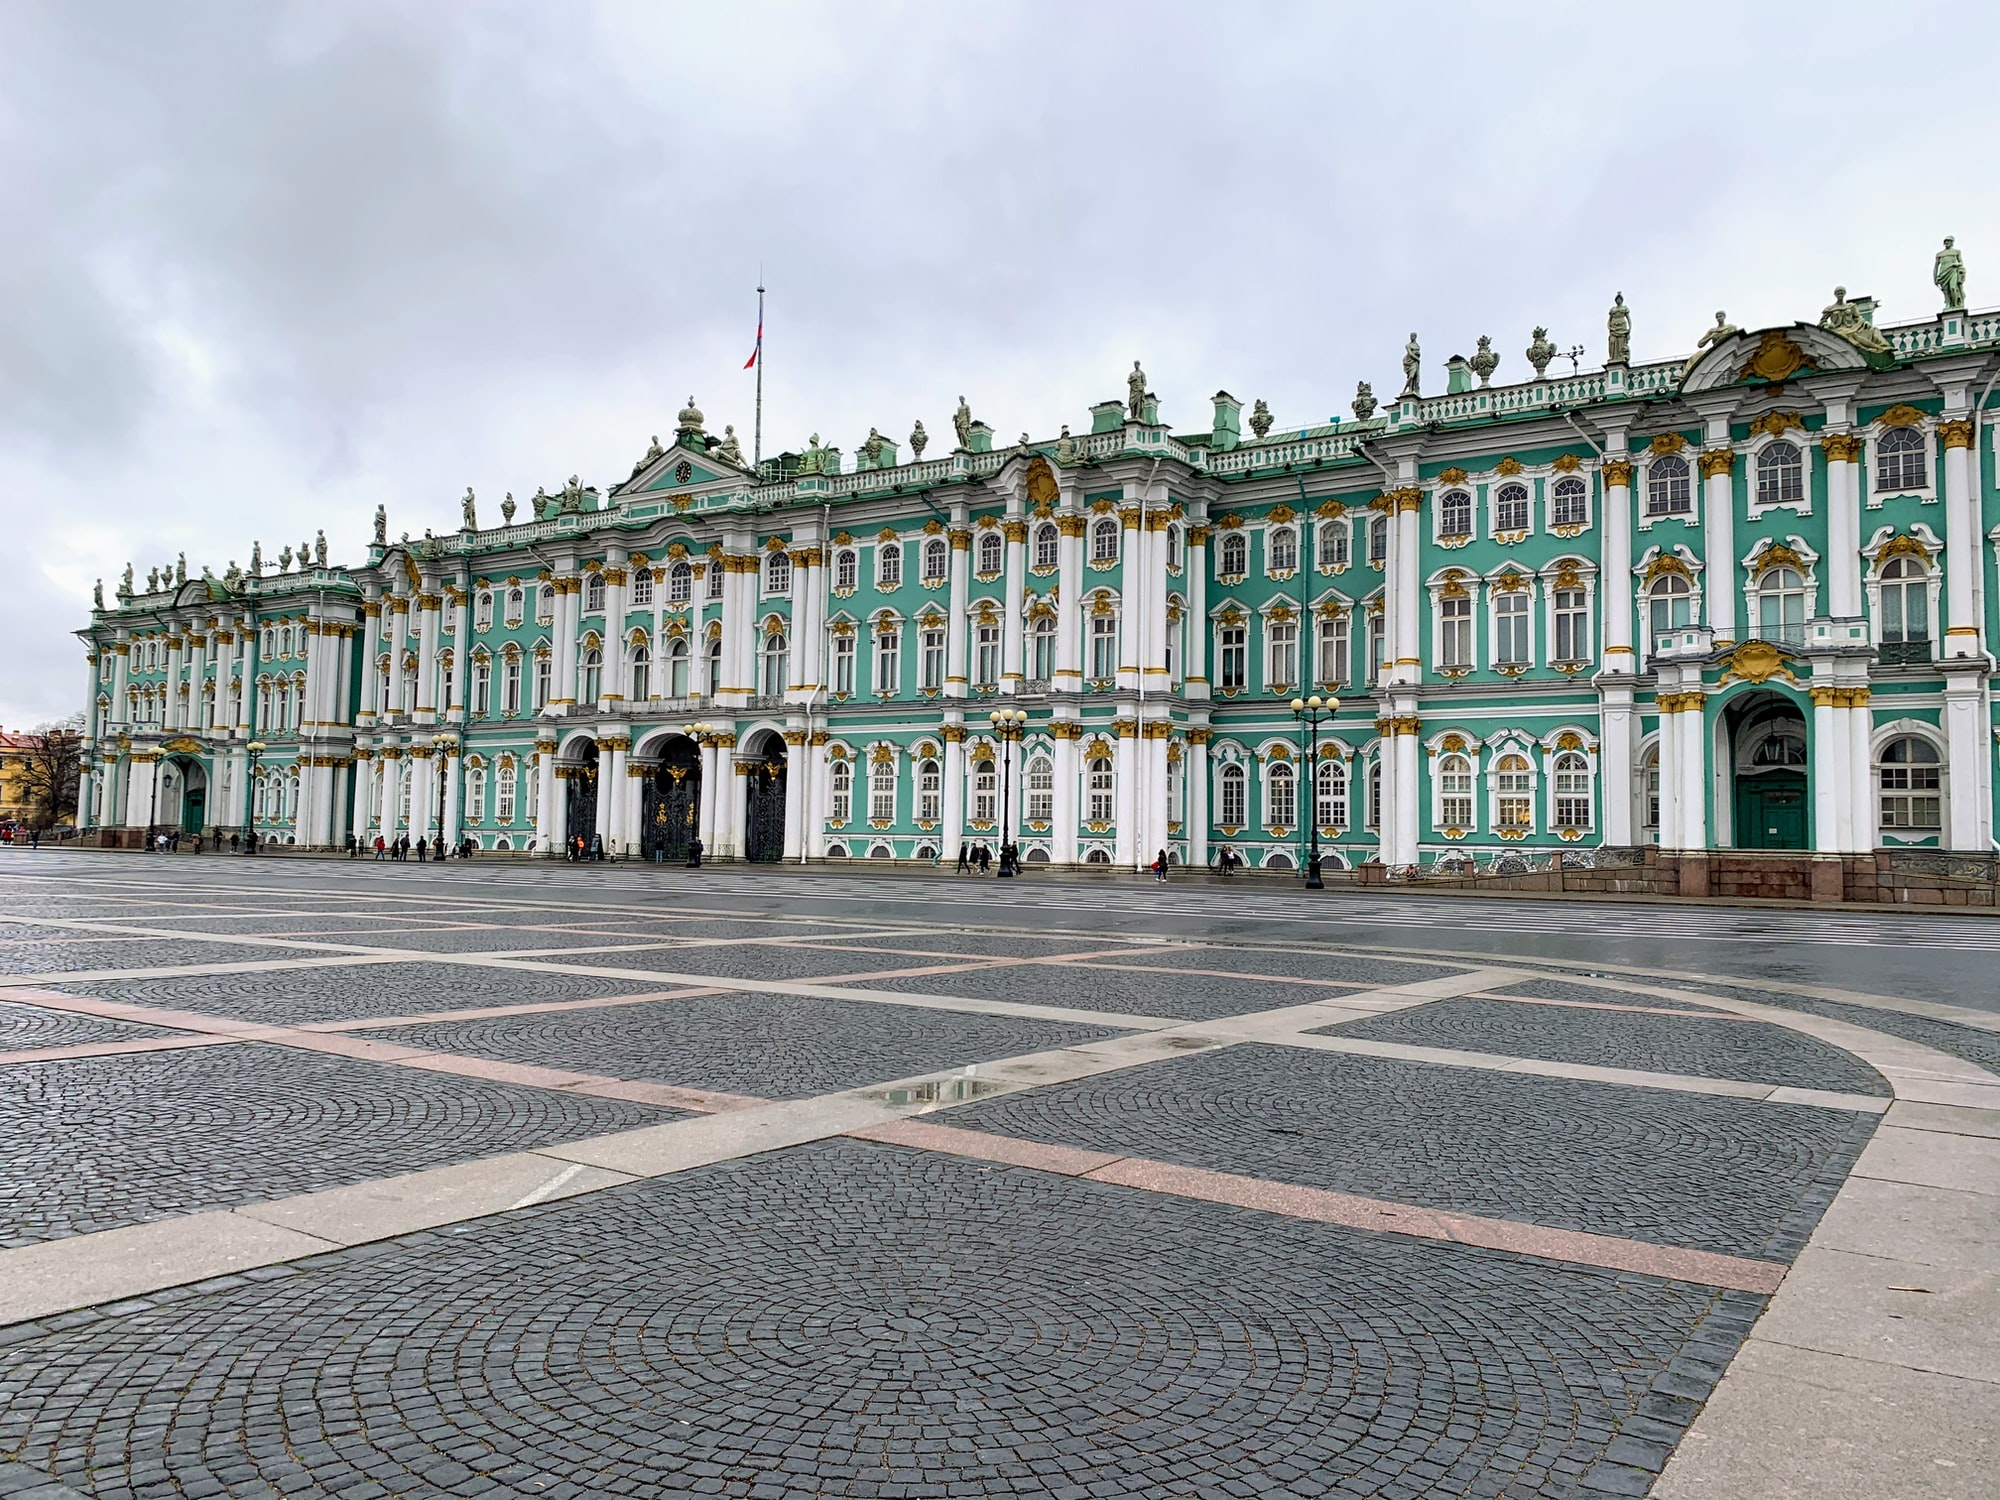 Stuck inside? Take a journey through Russia's iconic Hermitage museum